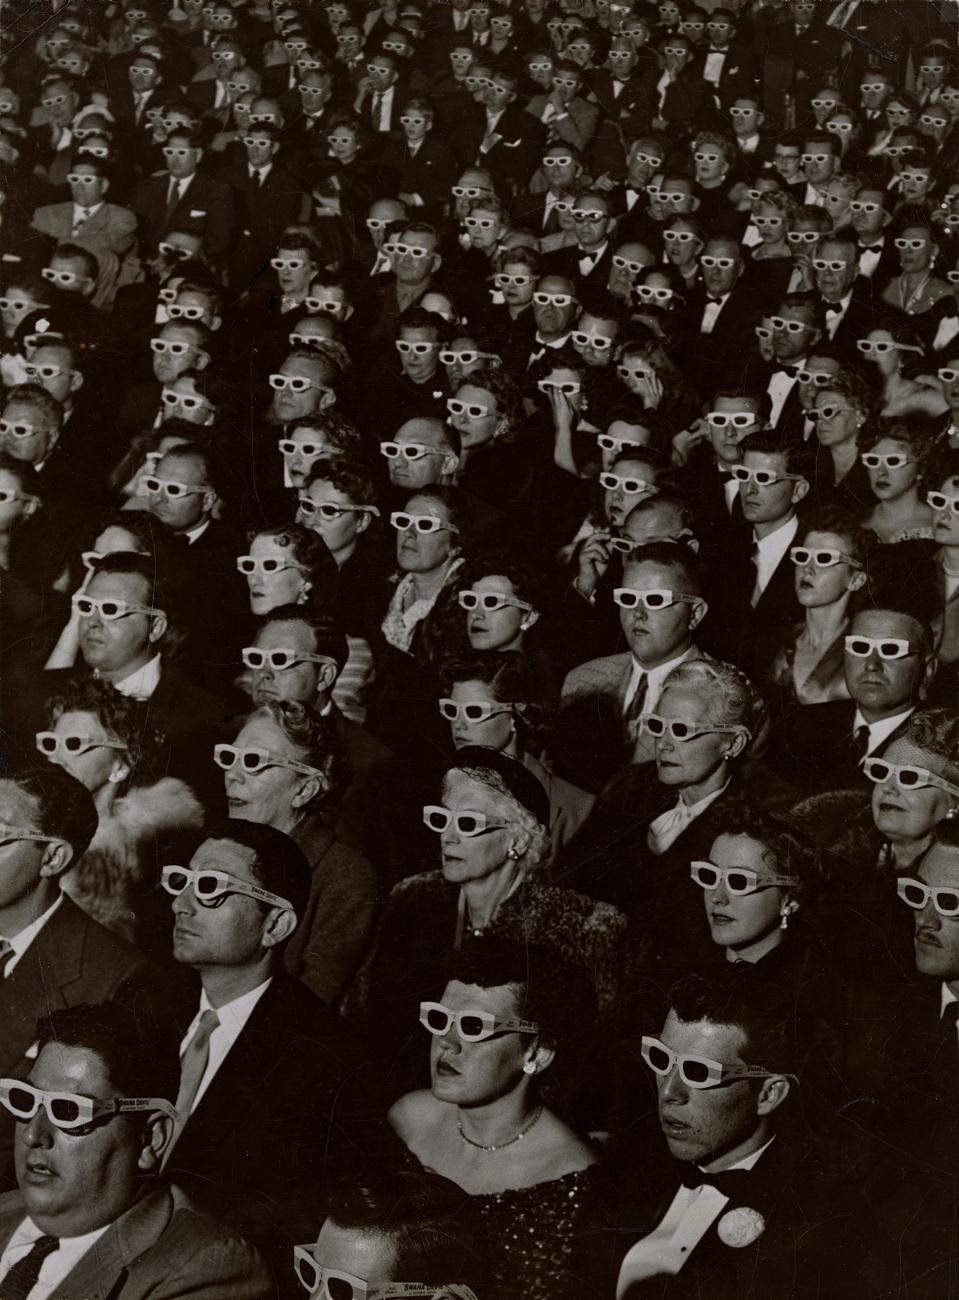 J. R. Eyerman, American, 1906–1985, Audience watches movie wearing 3-D spectacles, 1952. Gelatin silver print. Museum of Fine Arts, Boston, The Howard Greenberg Collection—Museum purchase with funds donated by the Phillip Leonian and Edith Rosenbaum Leonian Charitable Trust. © 1952 The Picture Collection Inc. All rights reserved. Photograph Courtesy Museum of Fine Arts, Boston.